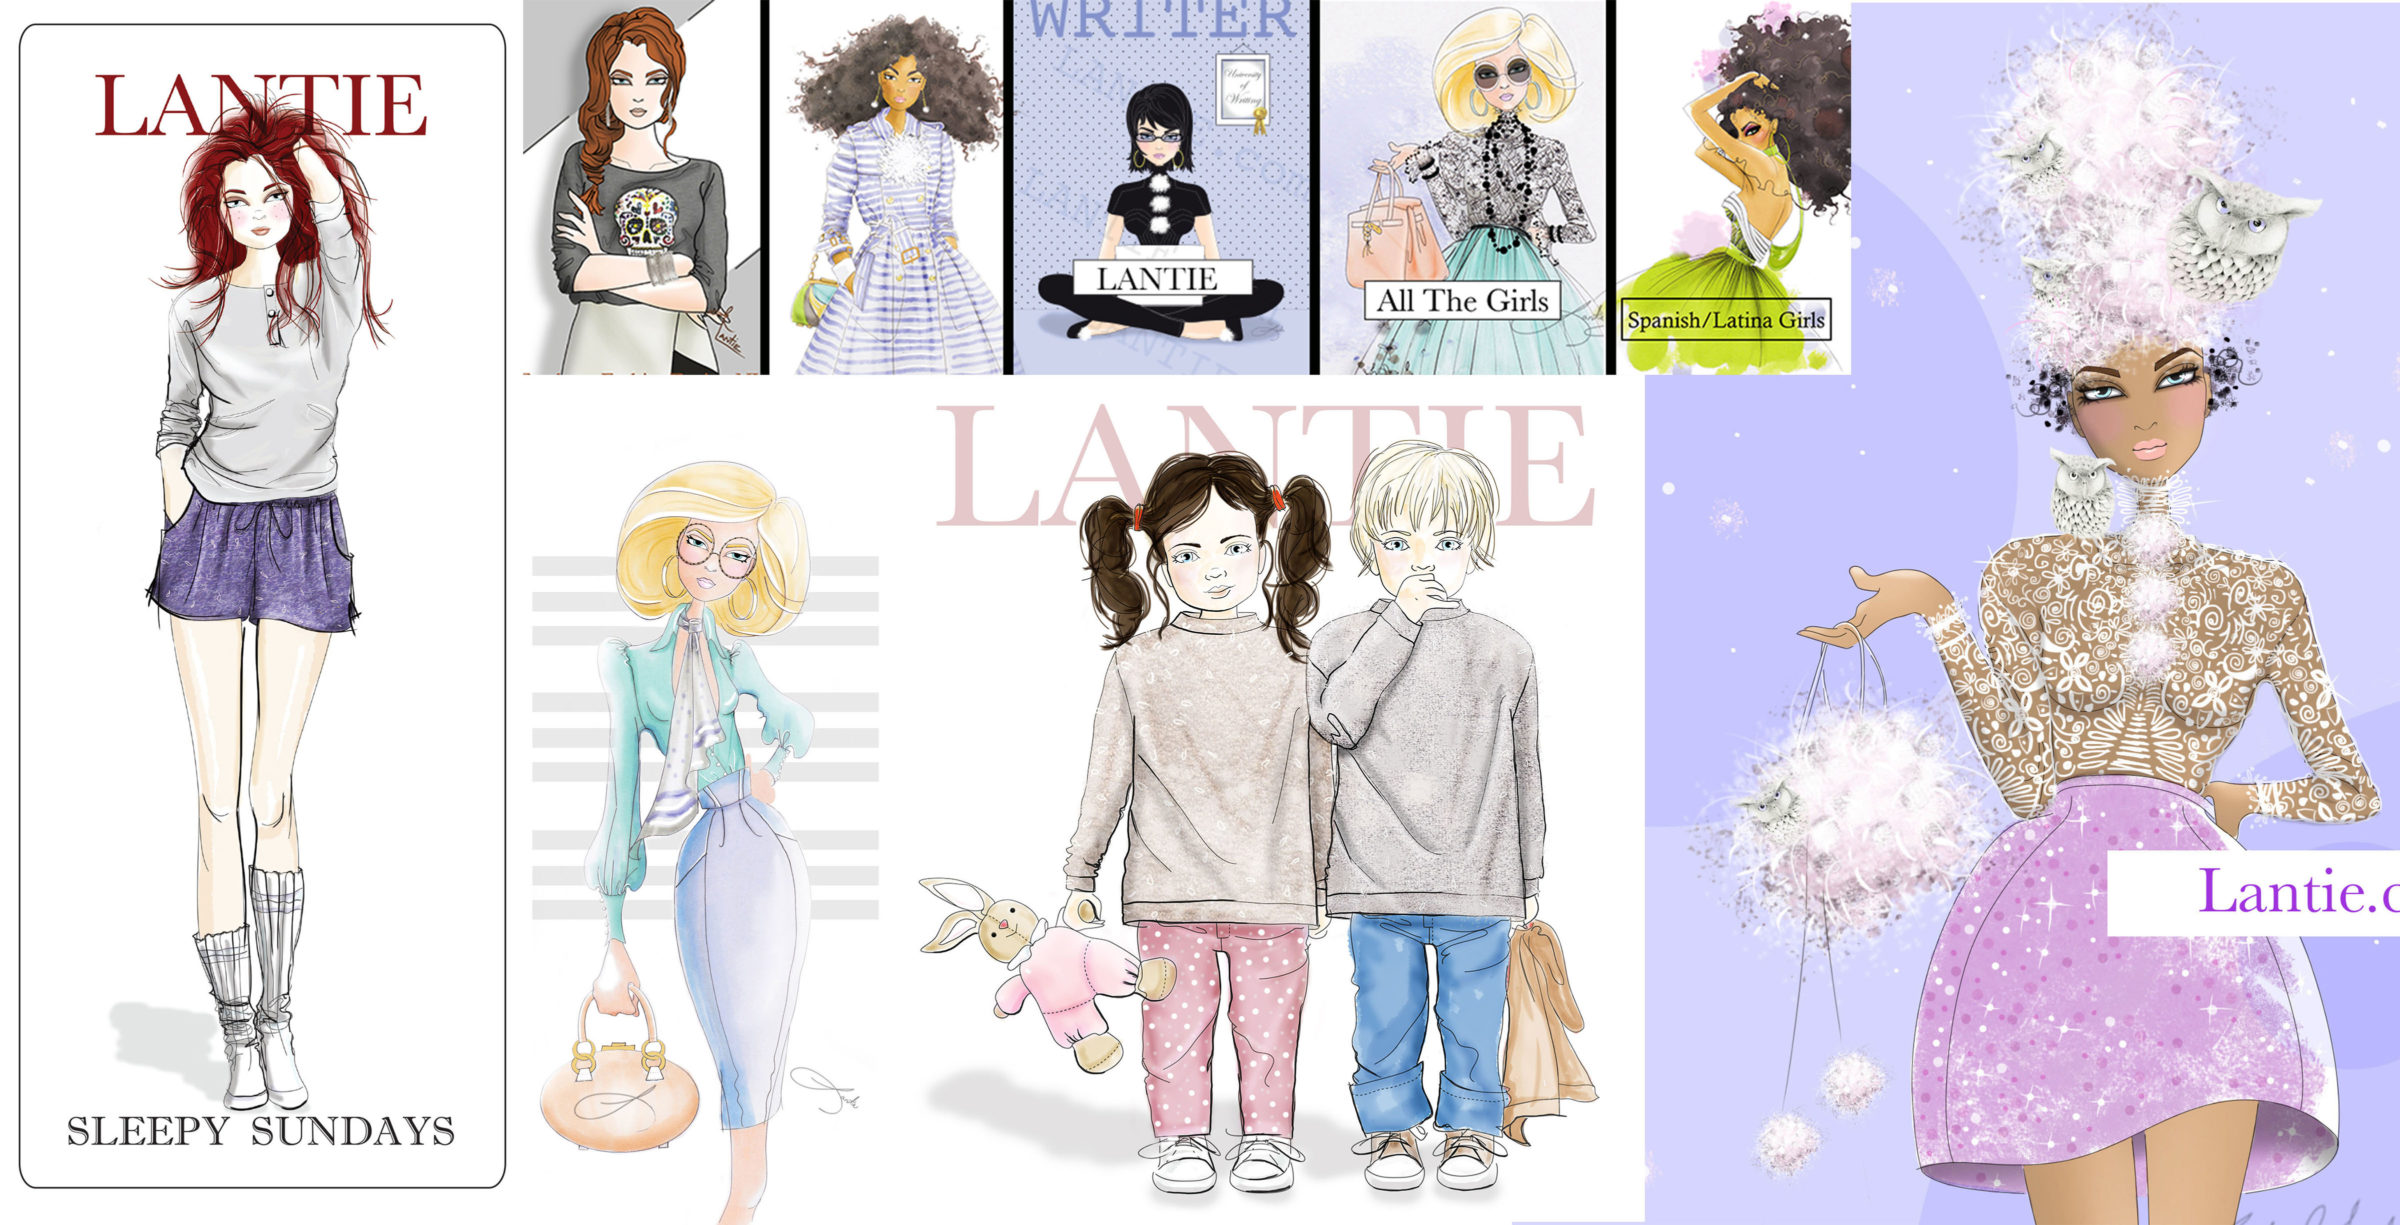 fashion illustrations, editorials, freelance illustrator,Lantie Foster,nyc,freelance fashion artist